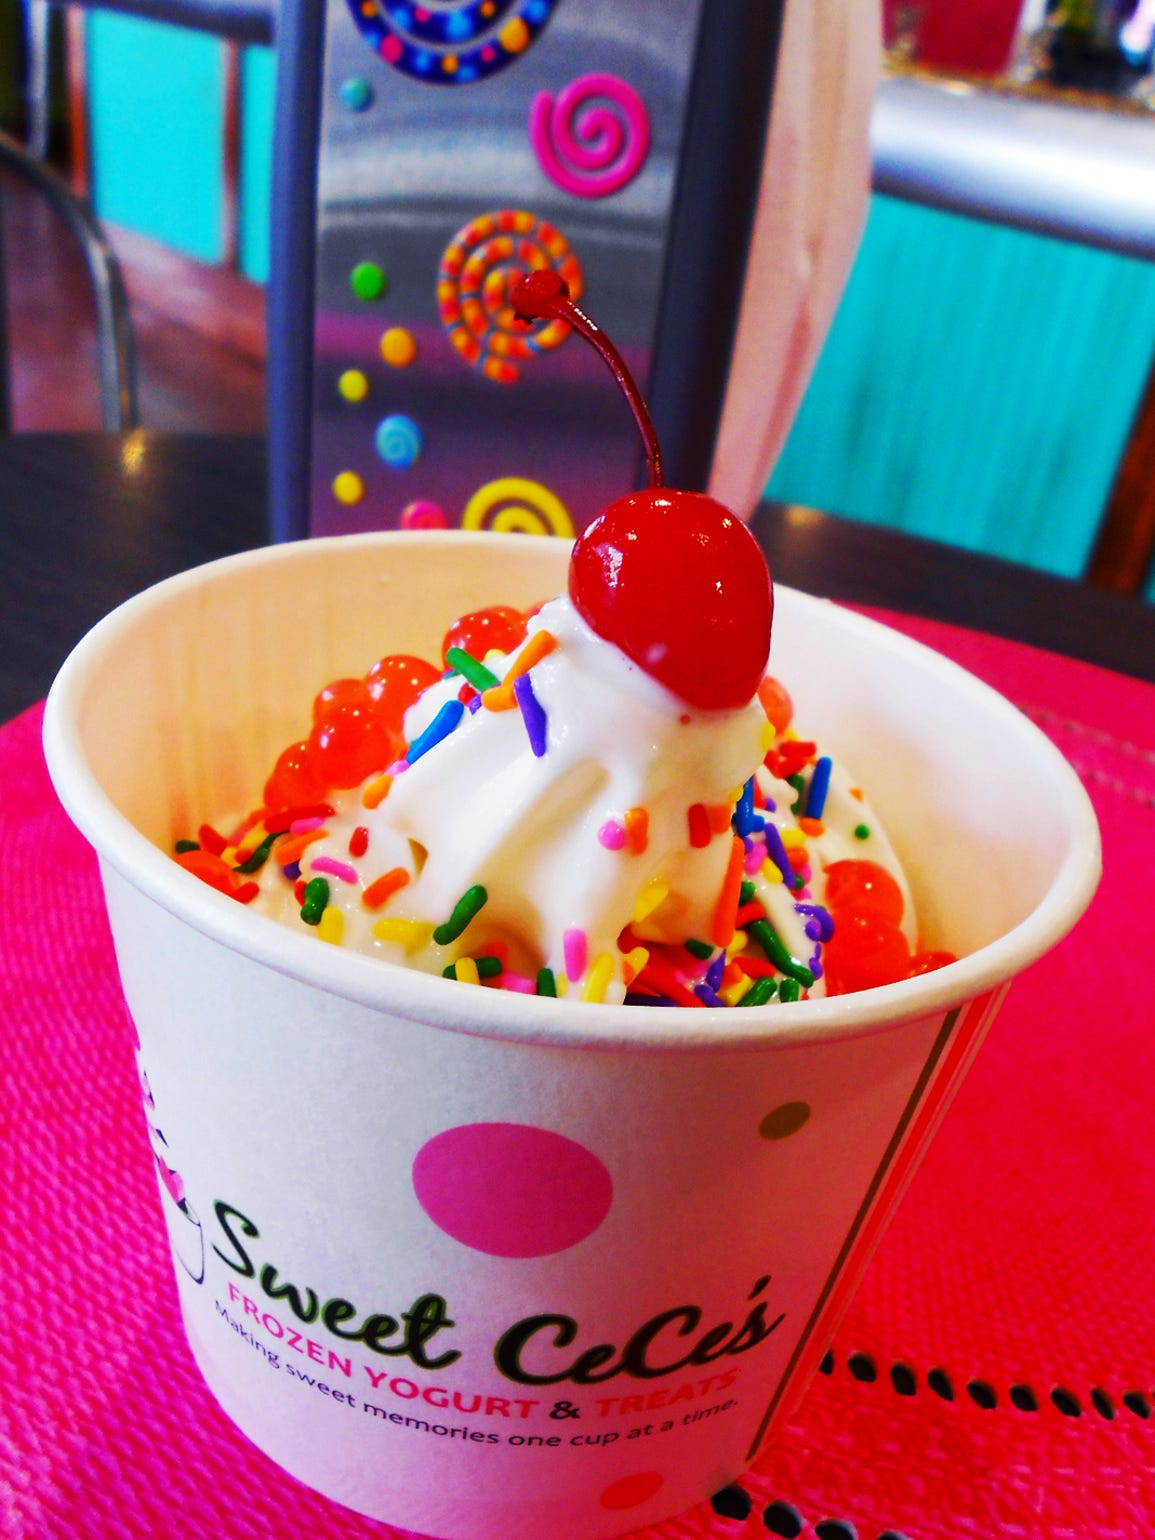 Sweet Cece's offers daily specials including a double